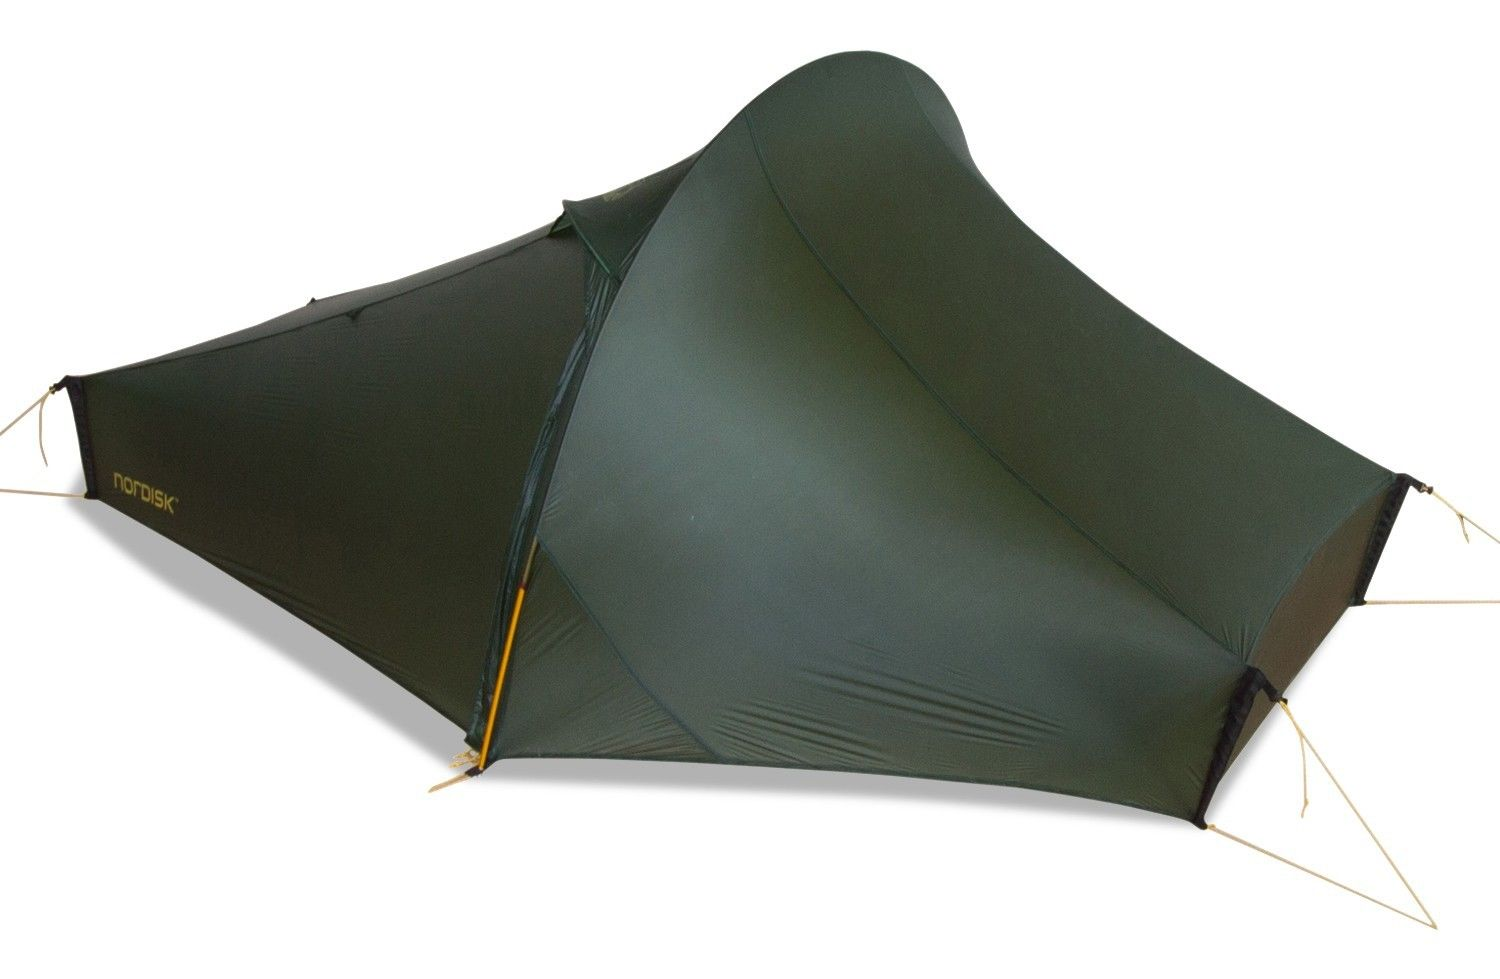 Nordisk Telemark 1 LW Aluminium Grün, 1 Person -Farbe Forest Green, 1 Person